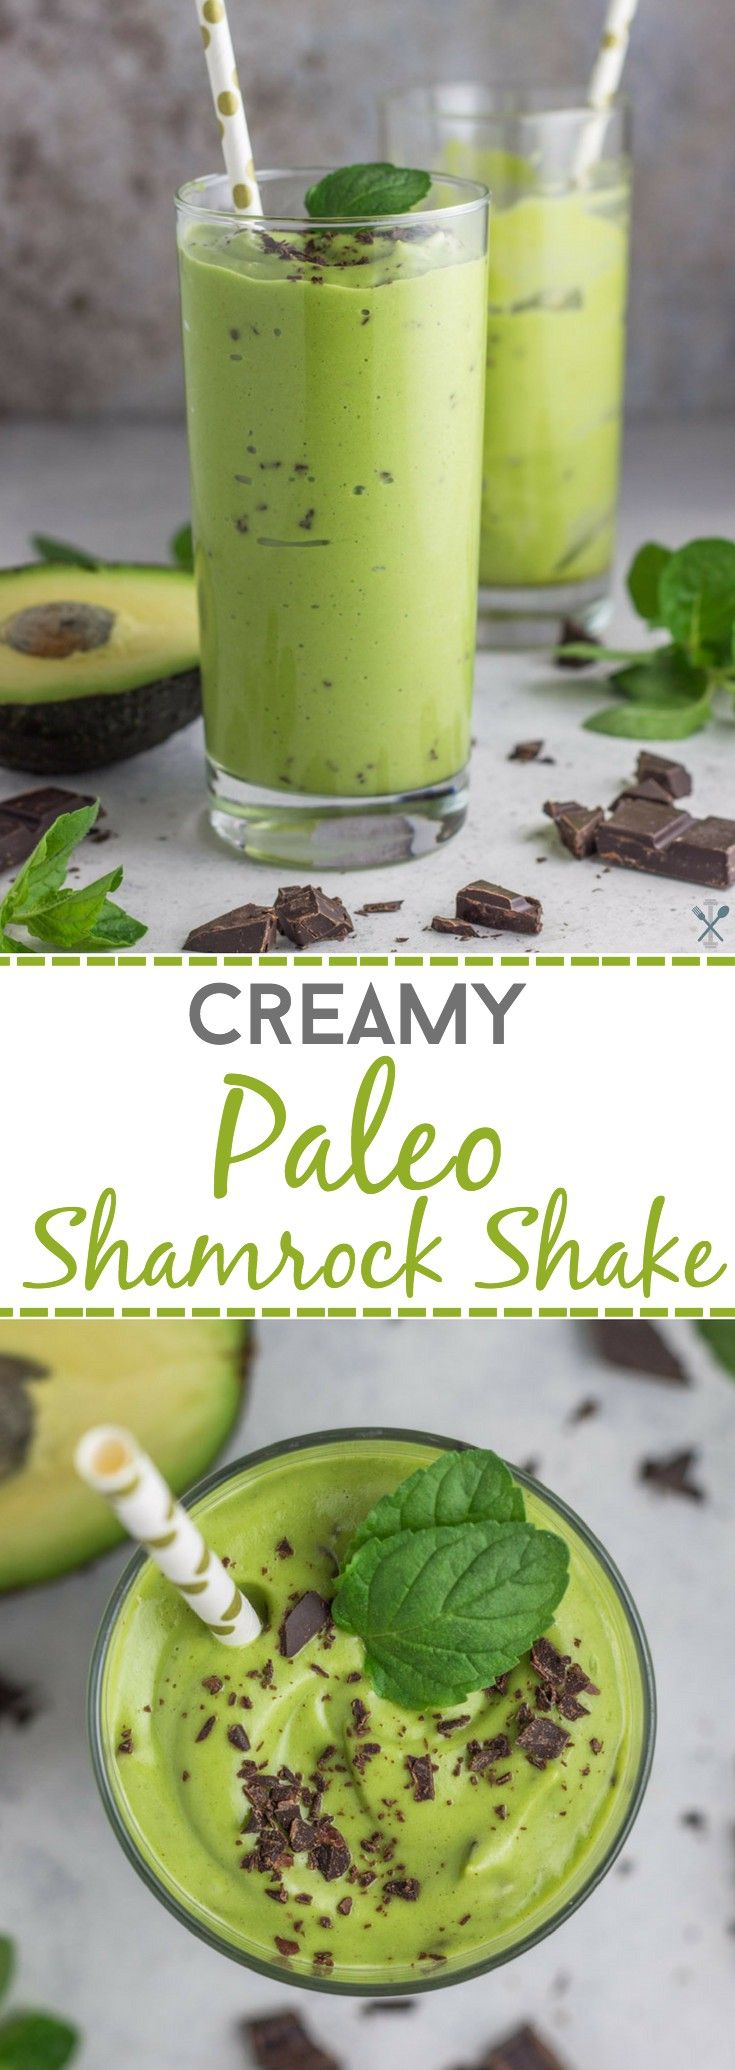 This creamy and healthy shamrock inspired shake is dairy free and naturally sweetened. Even packs a veggie punch!